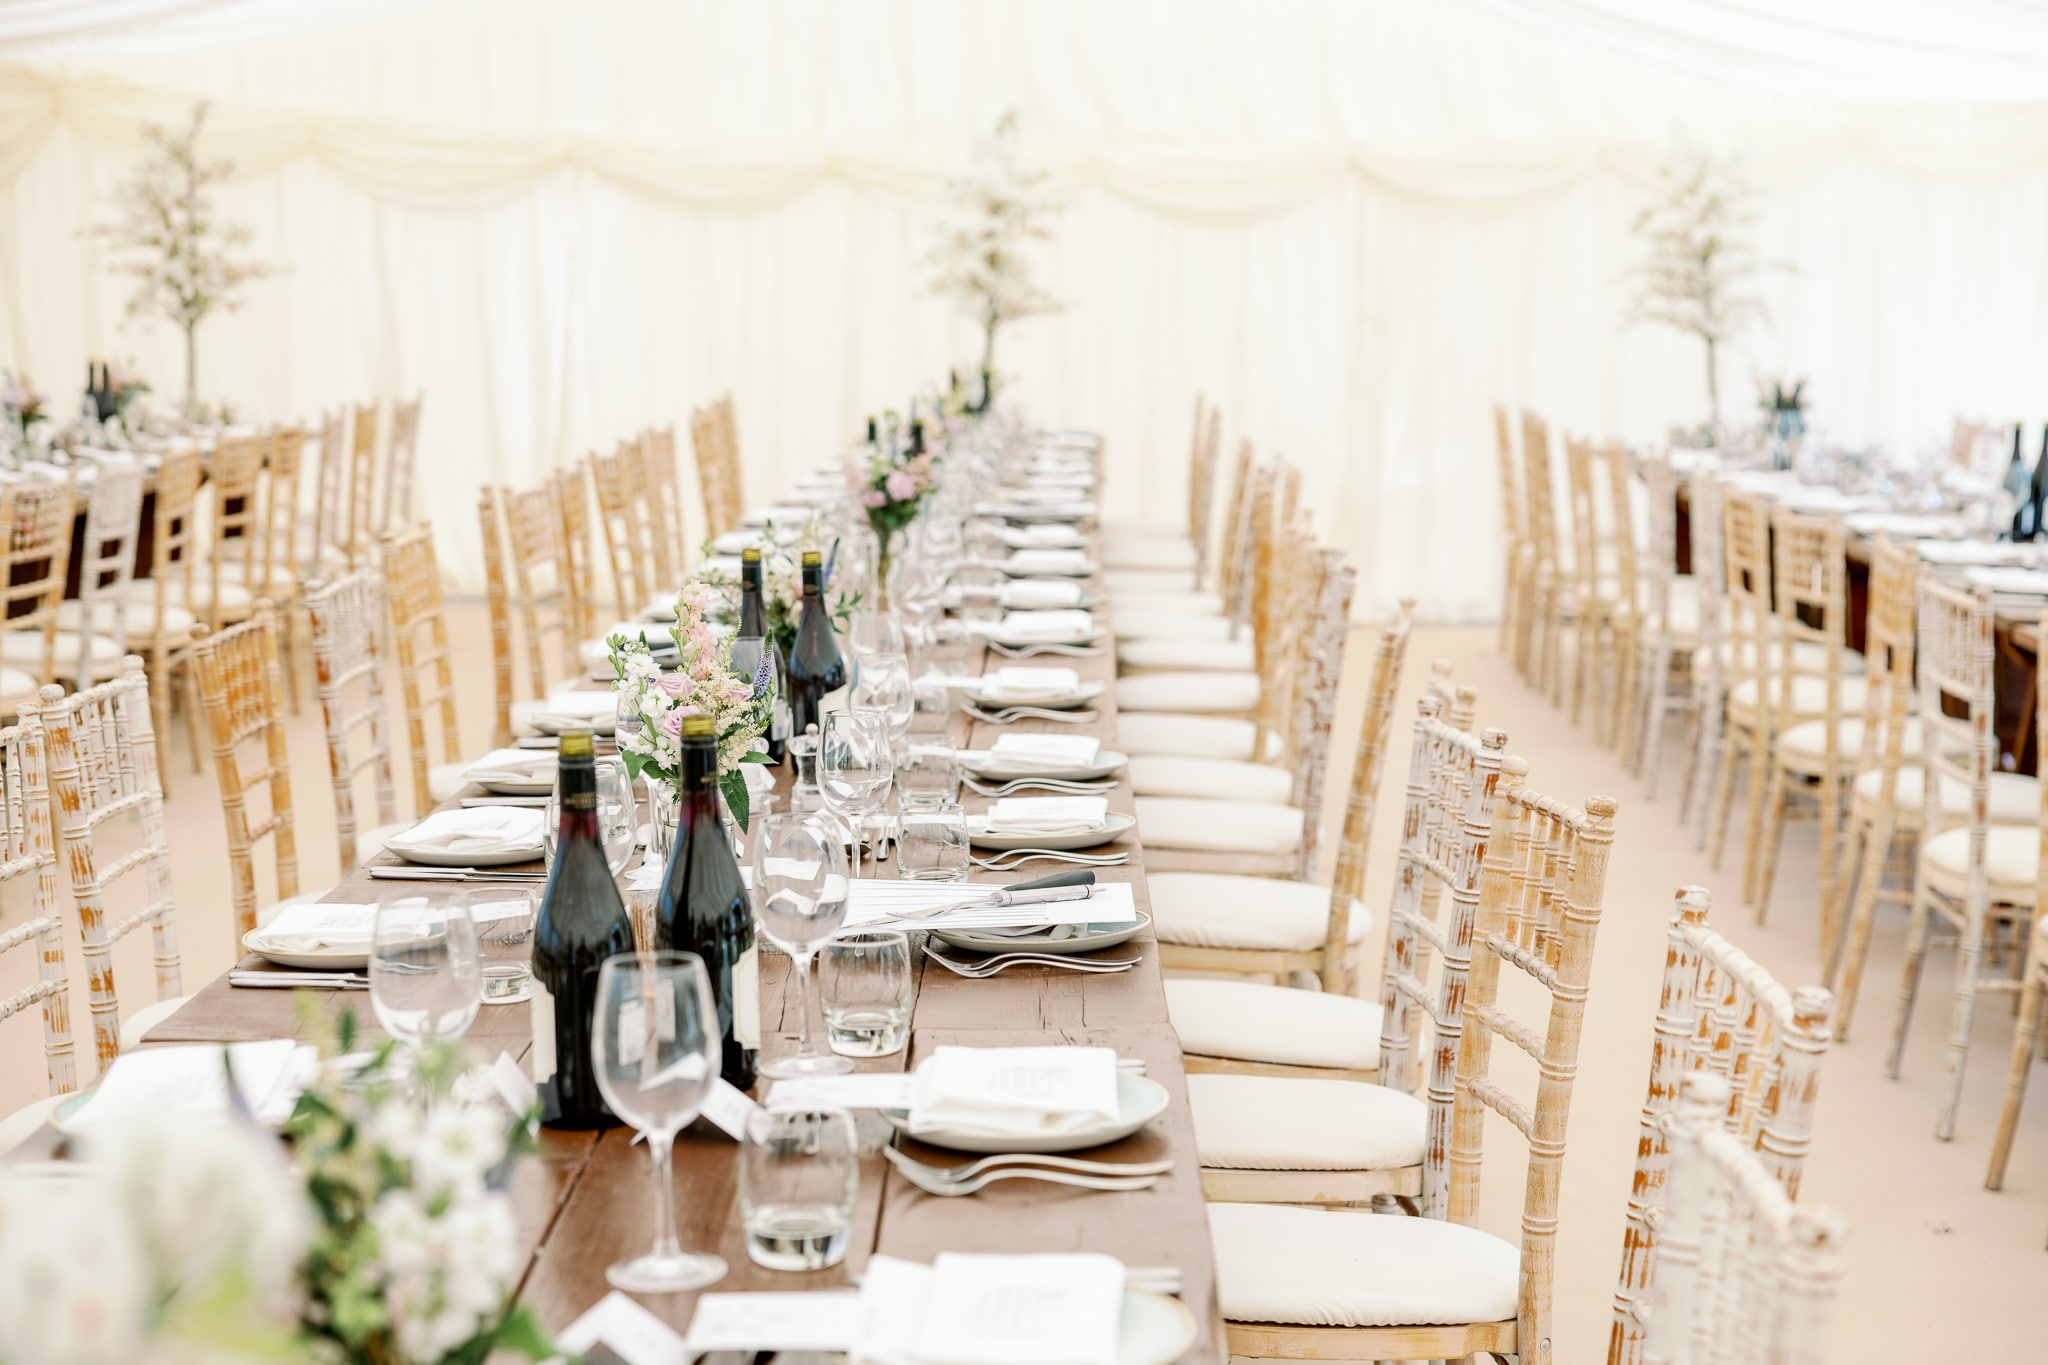 James Marquees Hire in East Sussex at Brickwall House wedding venue